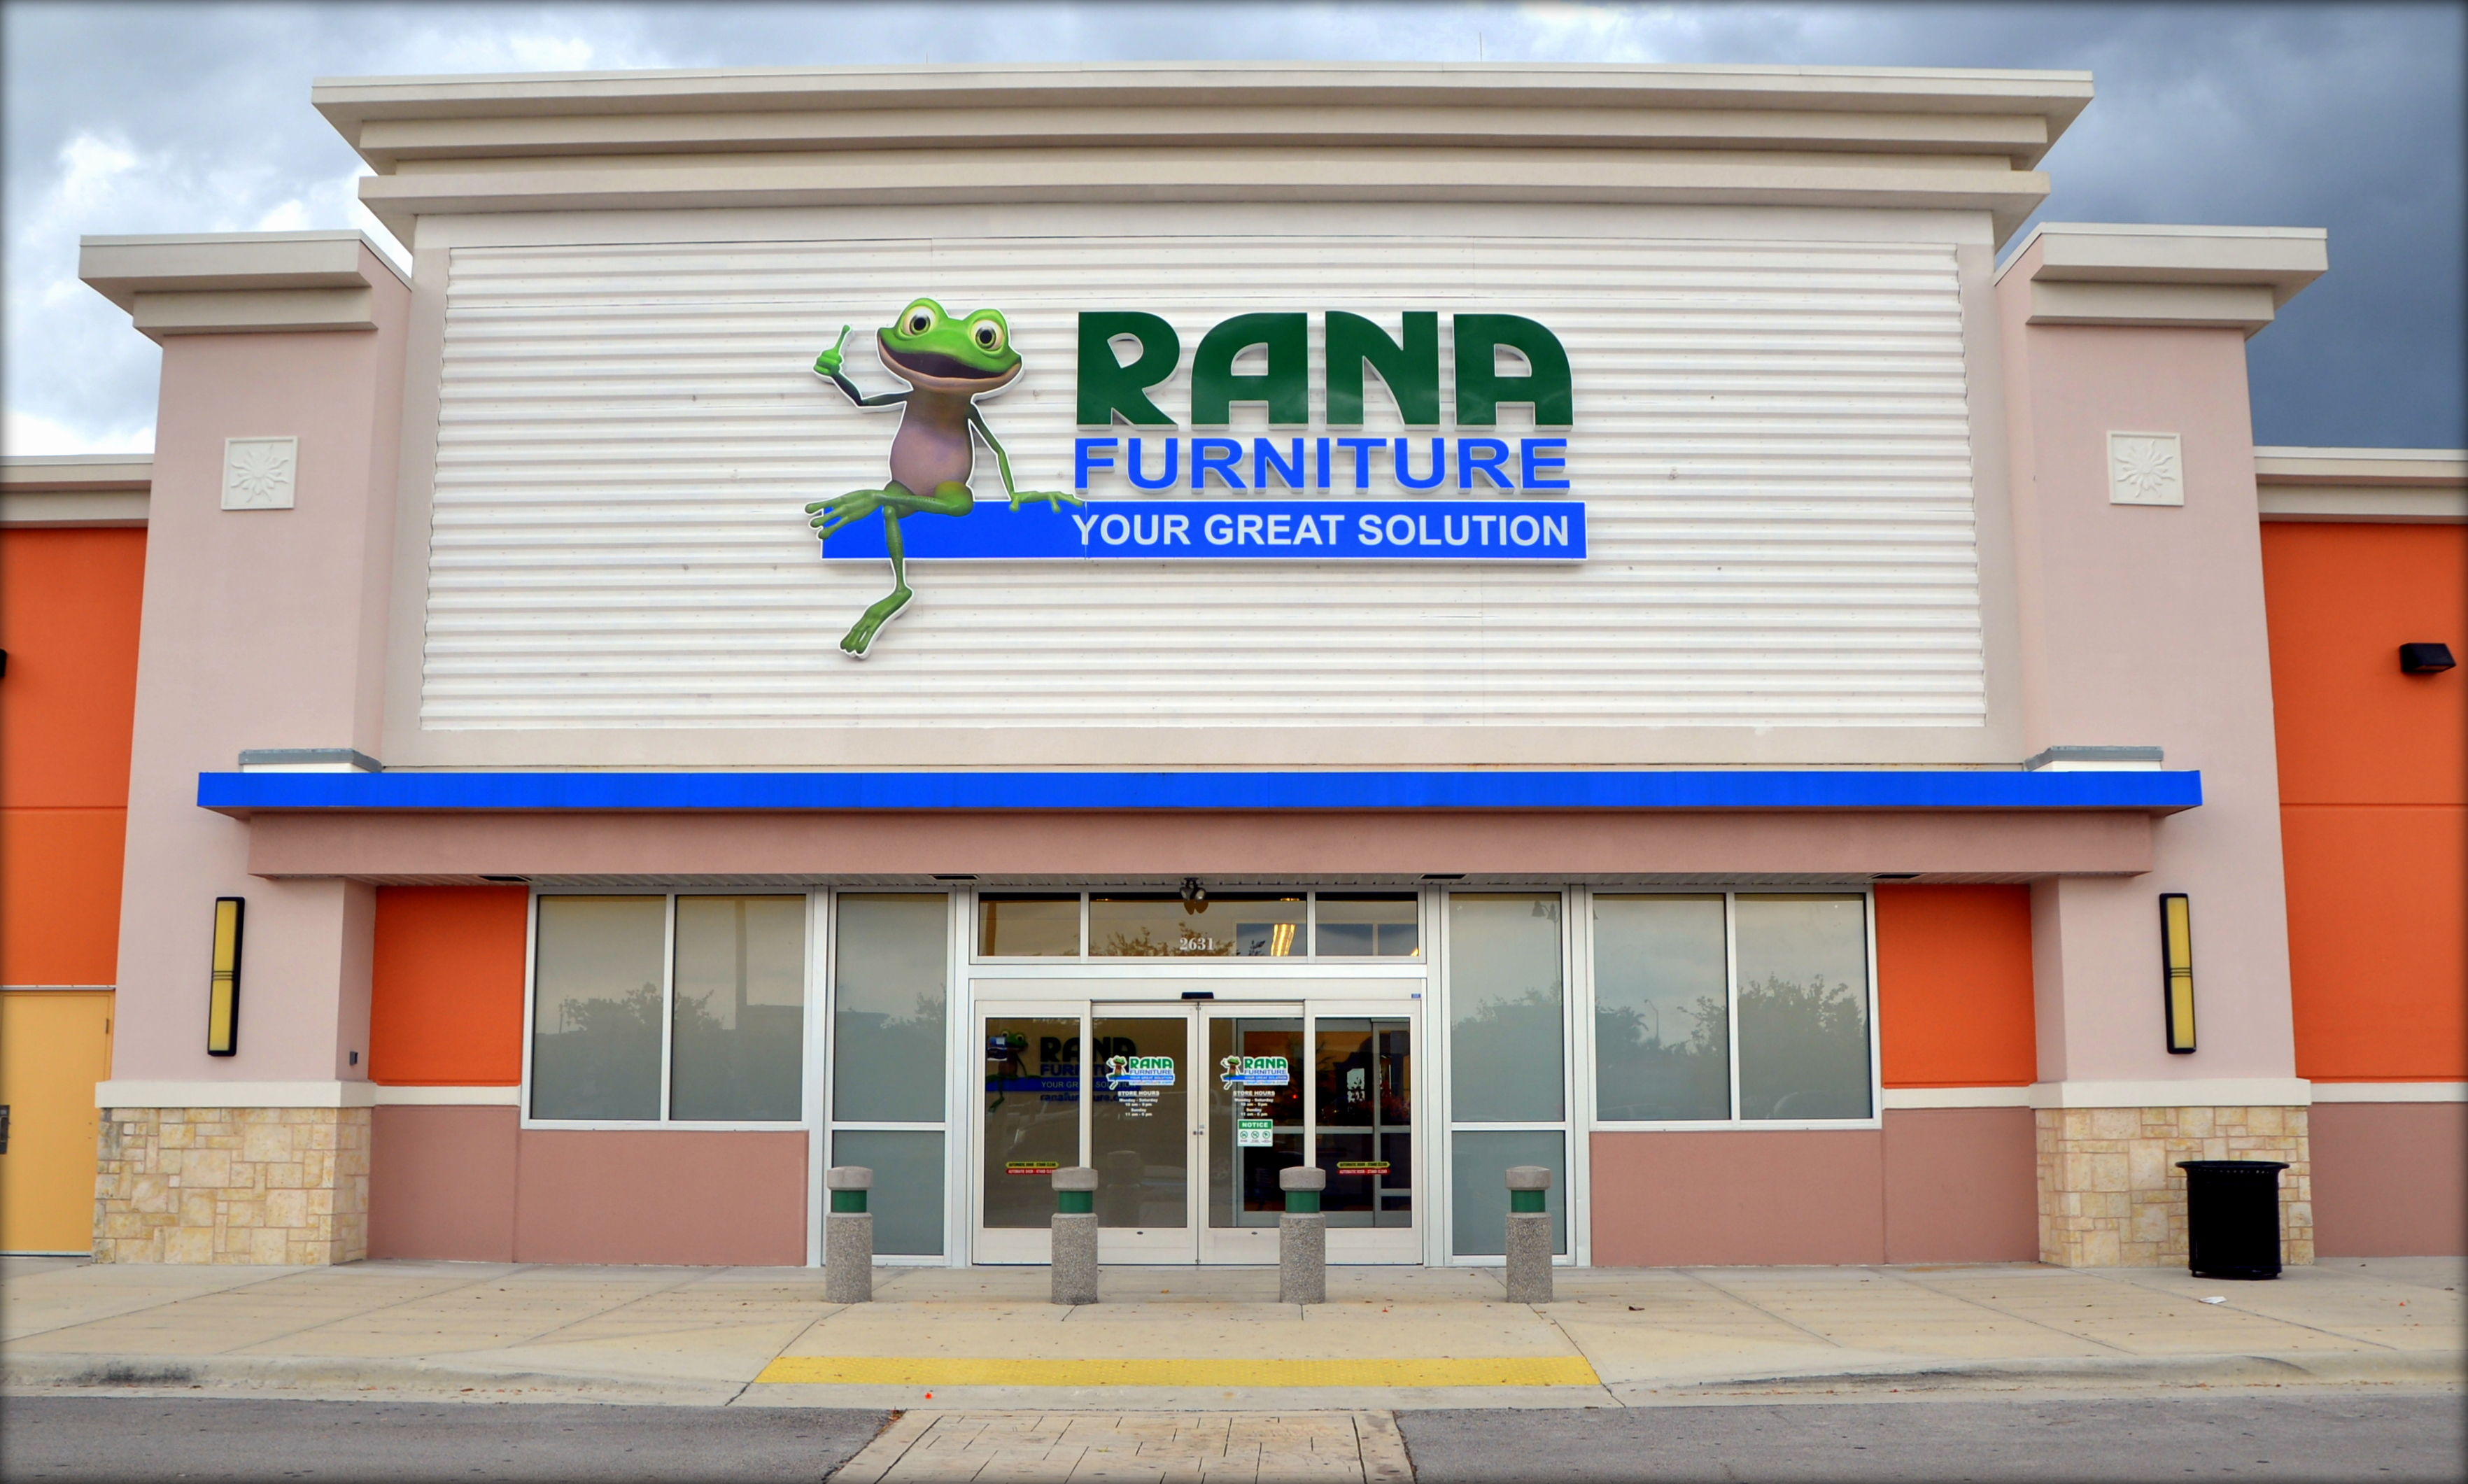 Rana furniture homestead 2631 ne 10th ct homestead fl for Furniture upholstery homestead fl